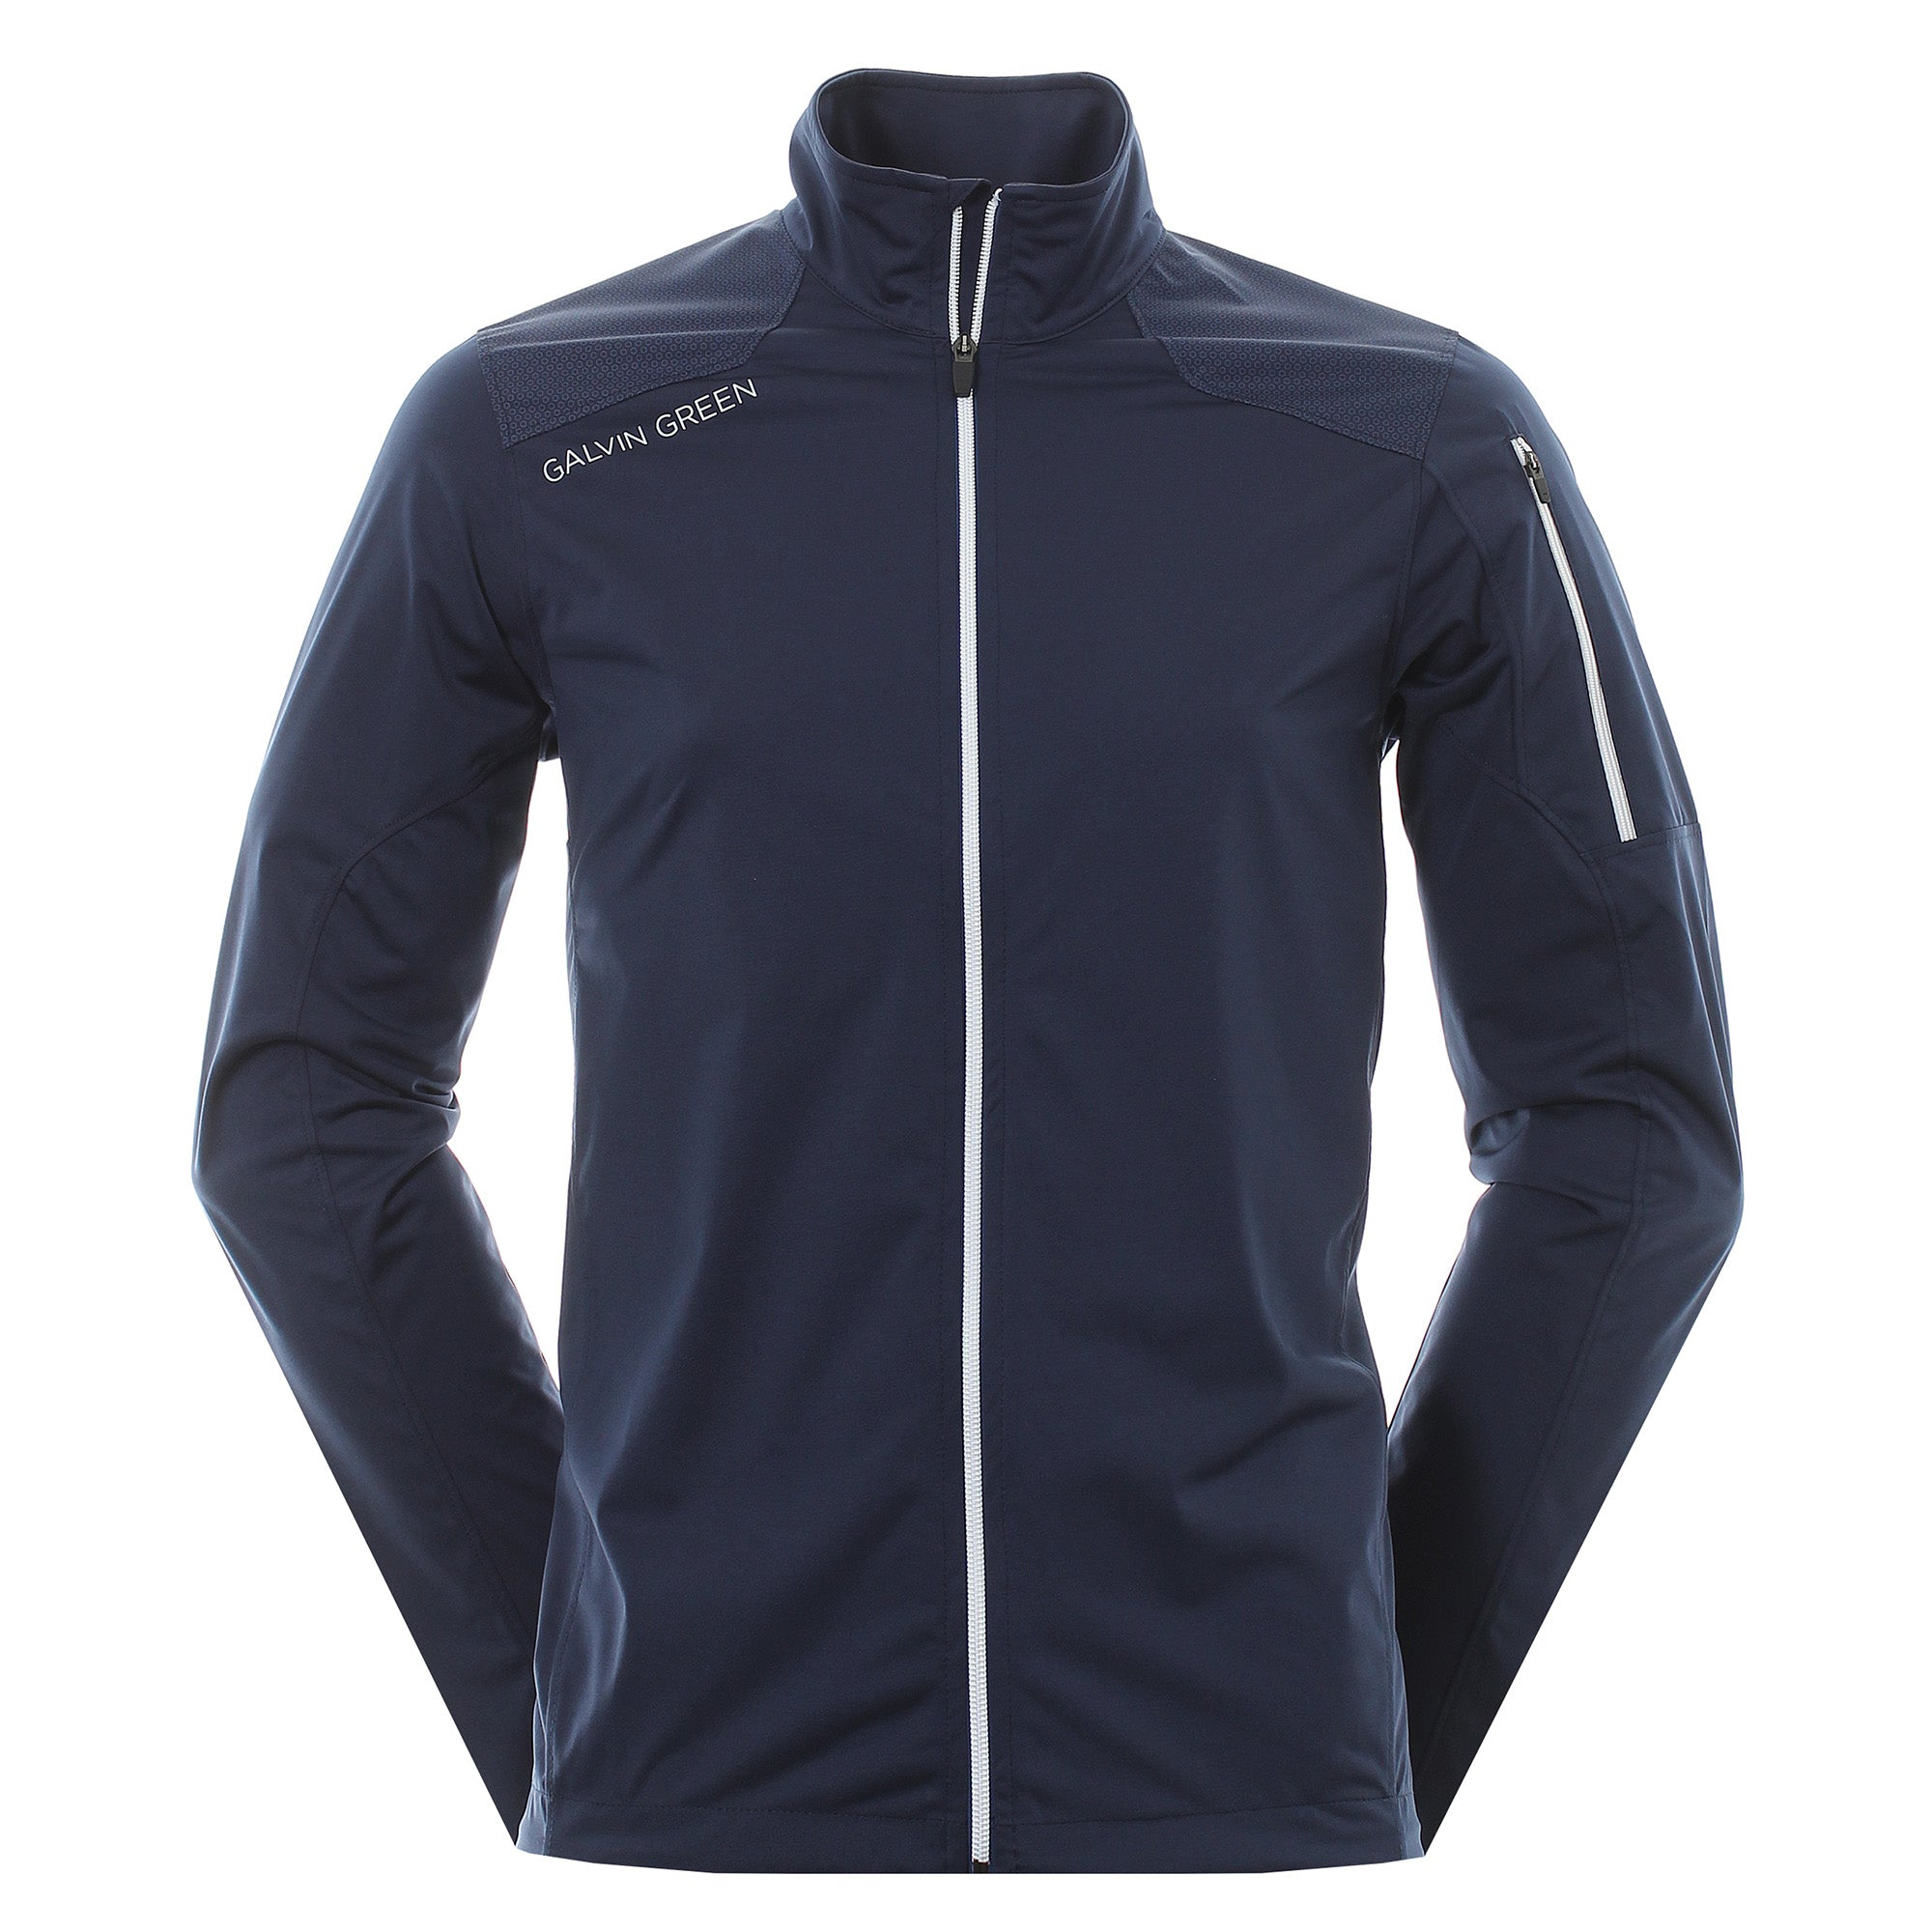 Galvin Green Lance Interface-1 Golf Jacket